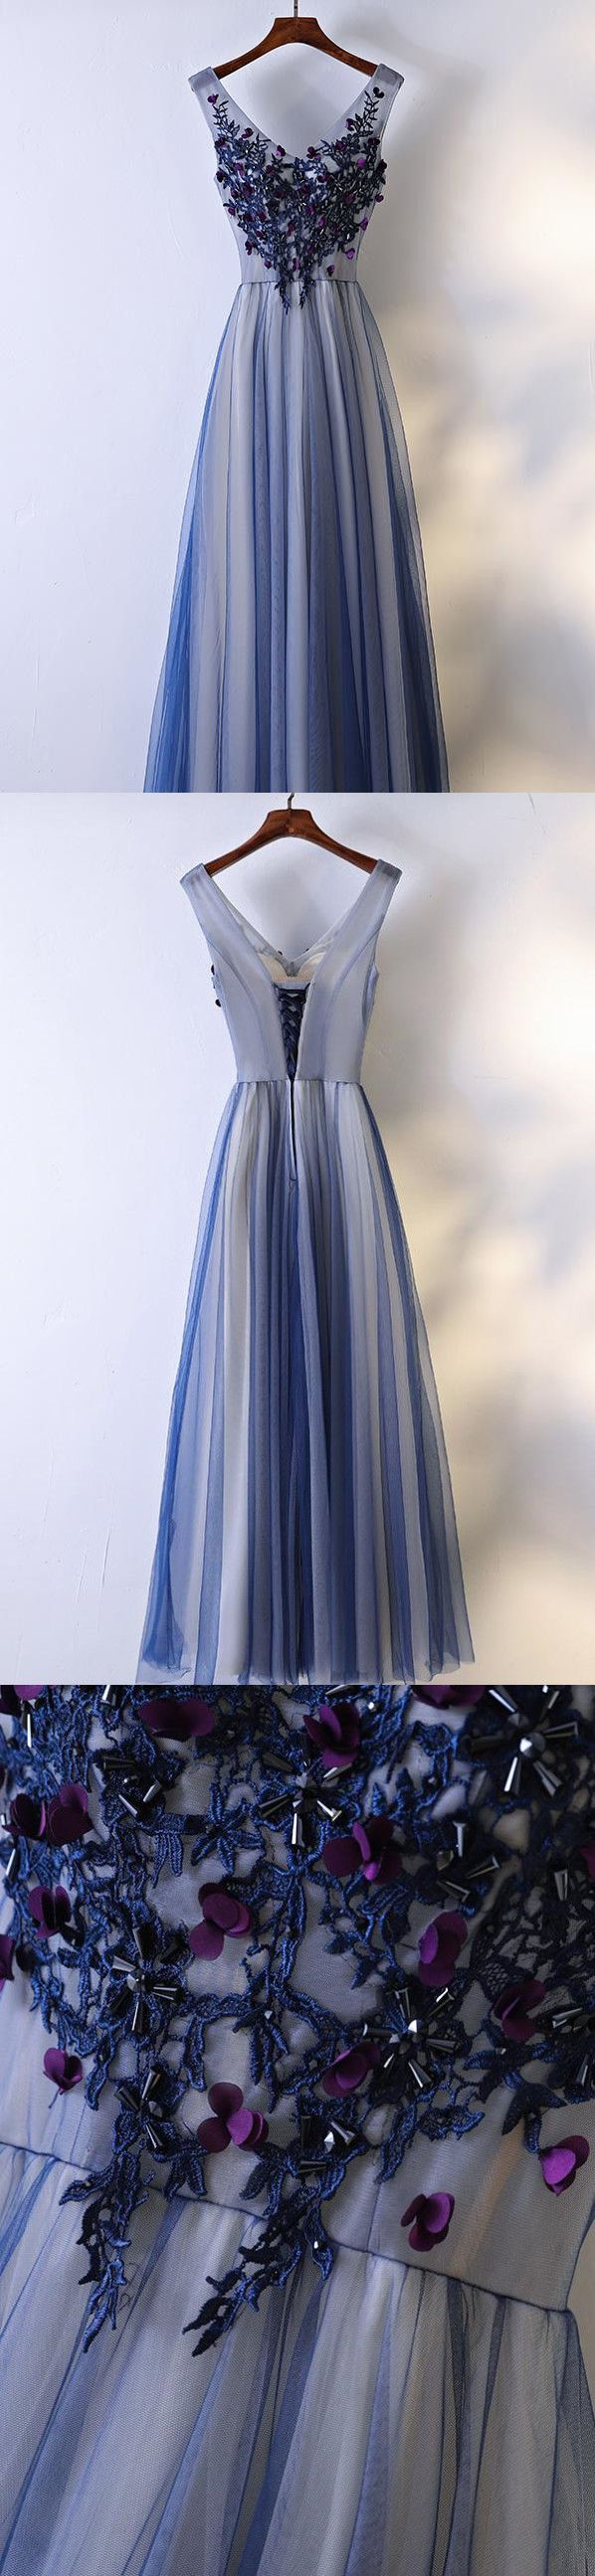 A-line V-neck Floor-Length Tulle Appliqued Beaded Prom Dresses ASD26882 #promdresses #vintage #country #applique #beaded